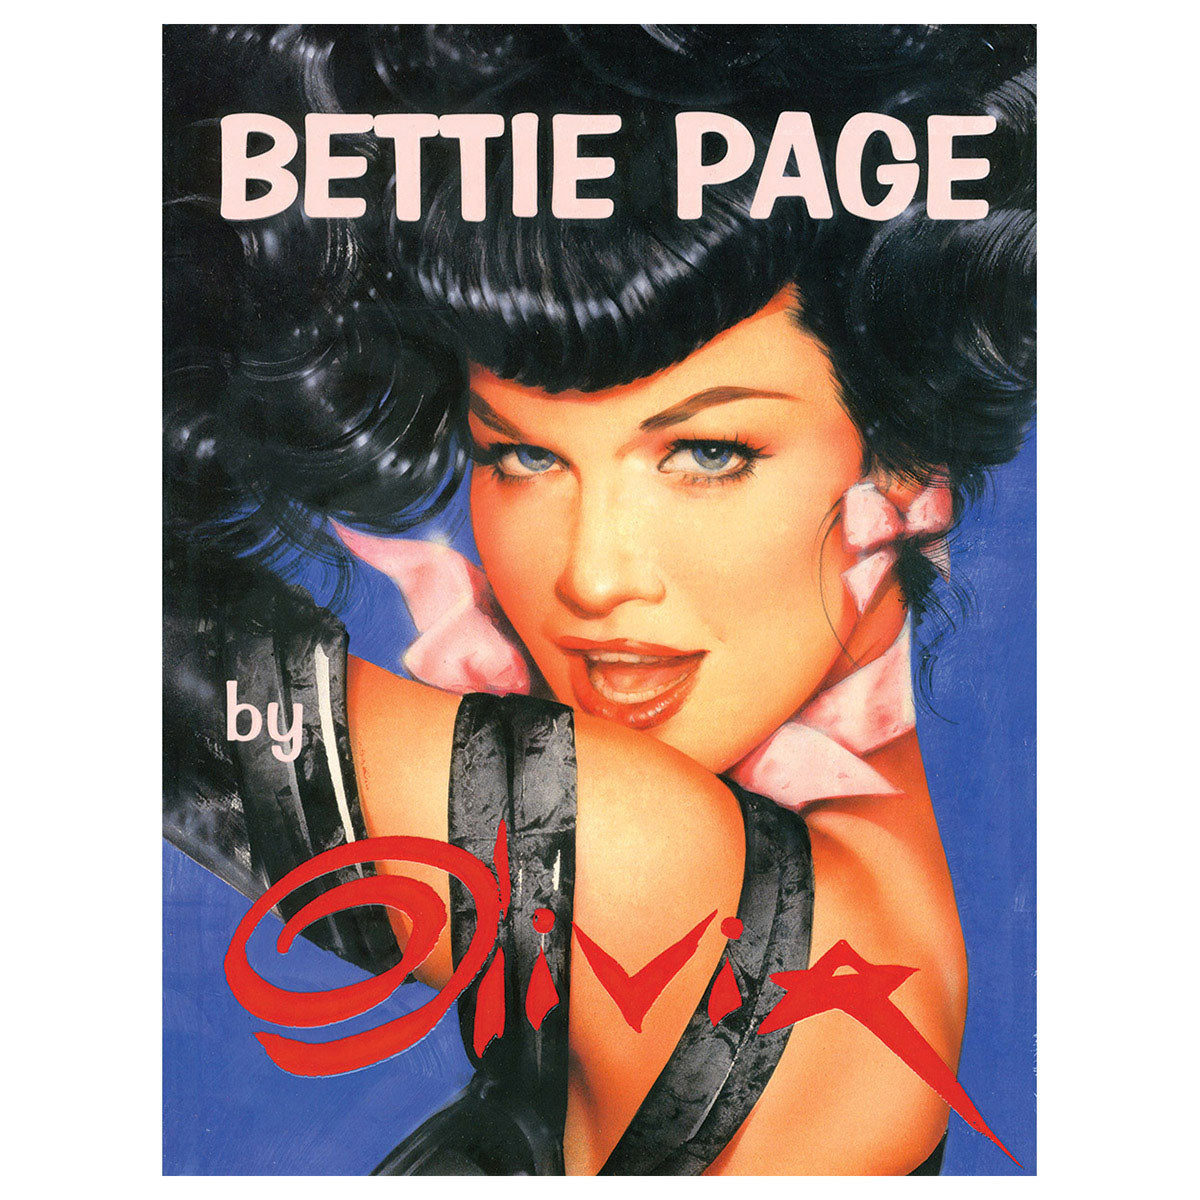 Bettie Page by Olivia -ozone Productions